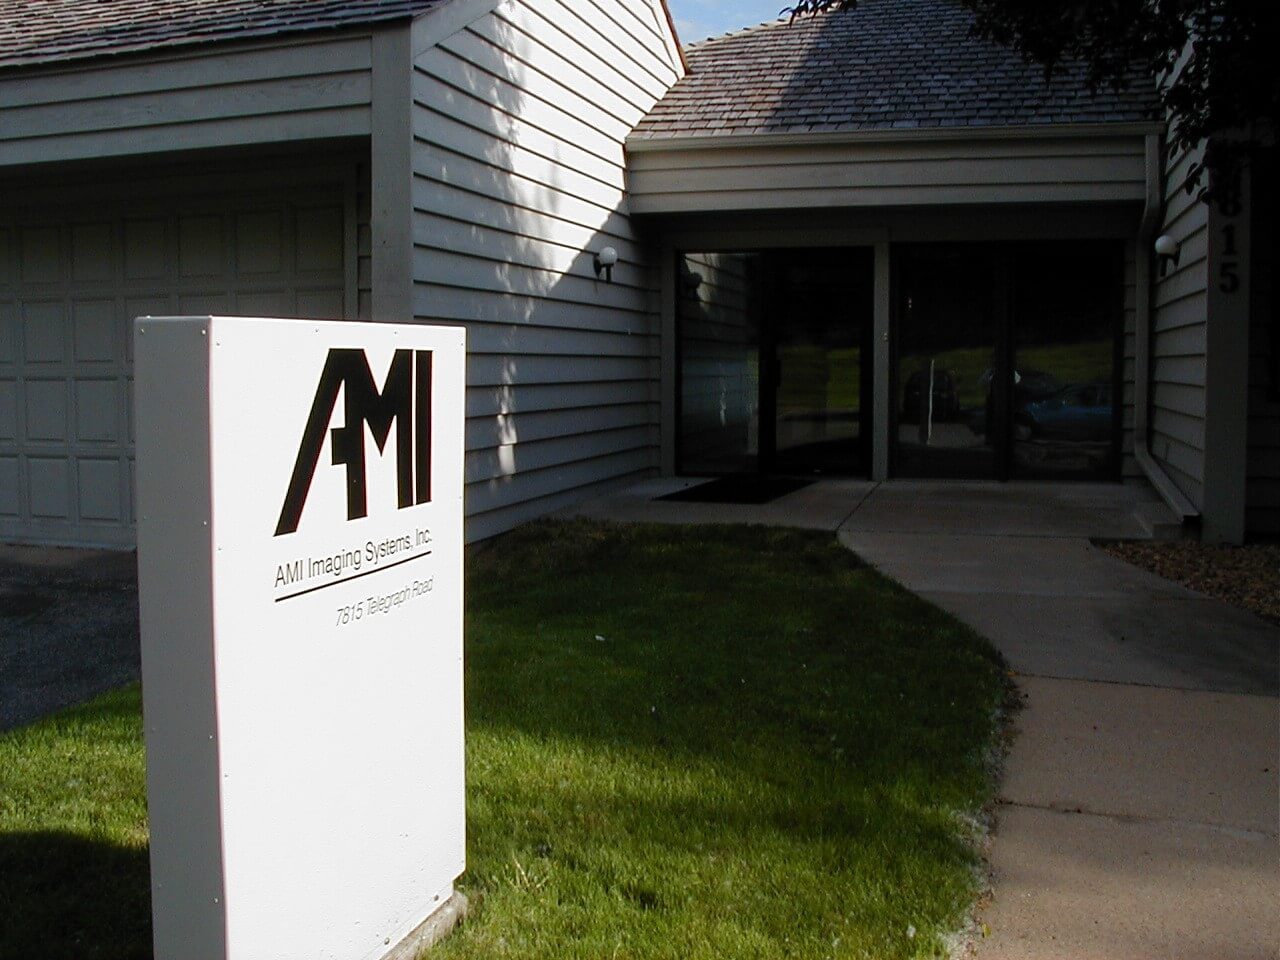 The offices of AMI Imaging